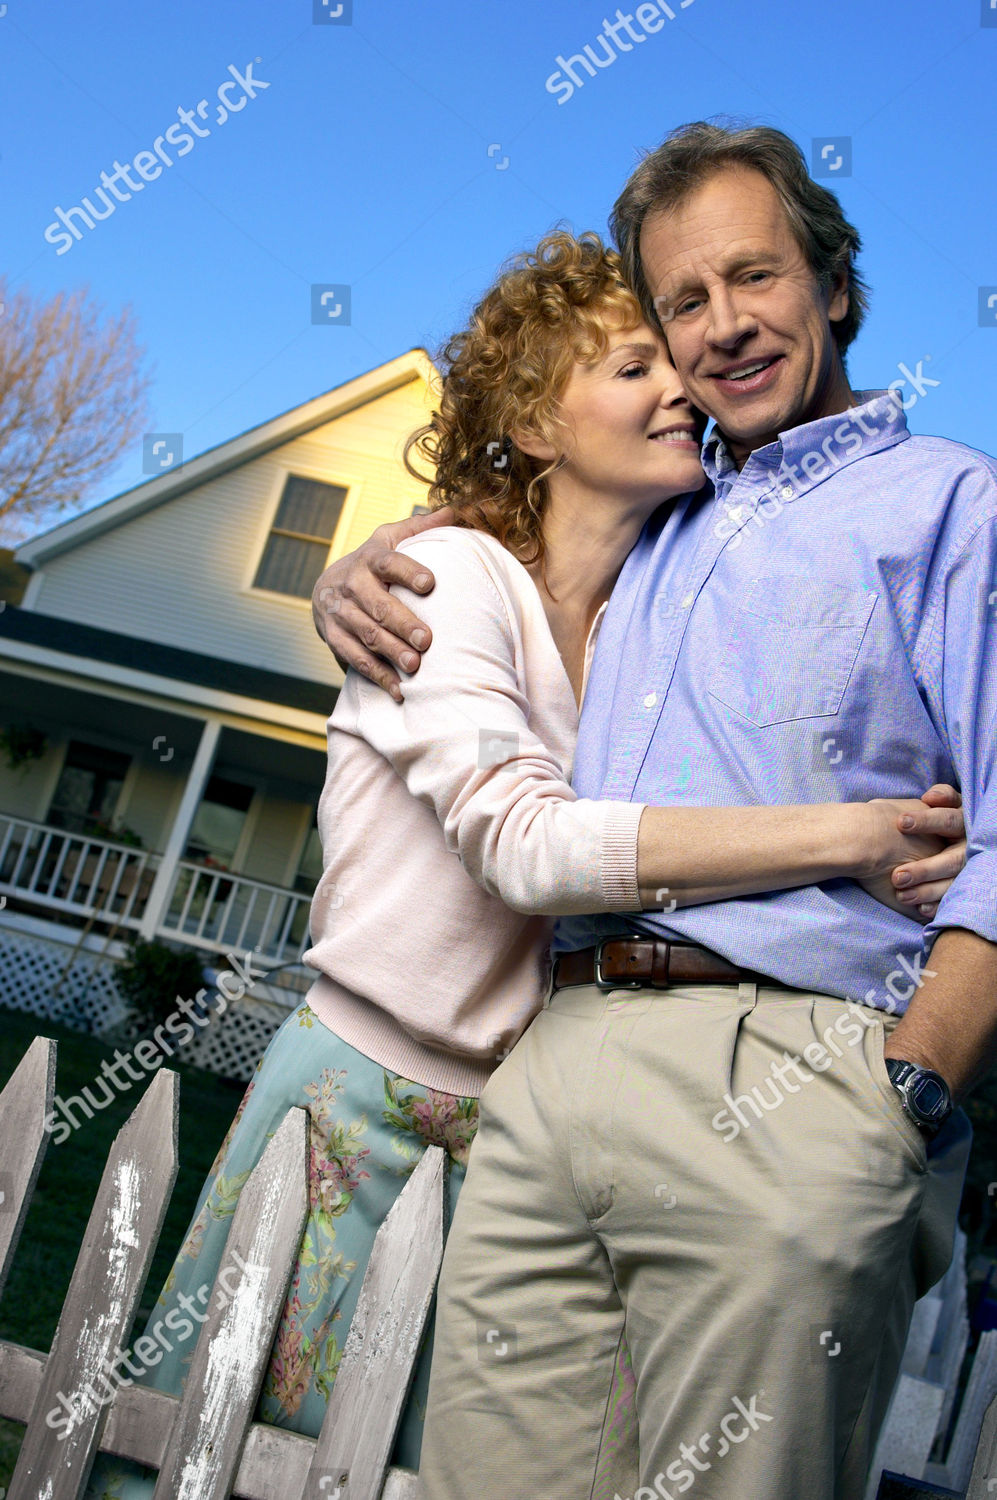 Jean Smart Richard Gilliland Foto Editorial En Stock Imagen En Stock Shutterstock His birthday, what he did before fame, his family life, fun trivia facts, popularity before fame. https www shutterstock com es editorial image editorial audreys rain 2003 5877556f